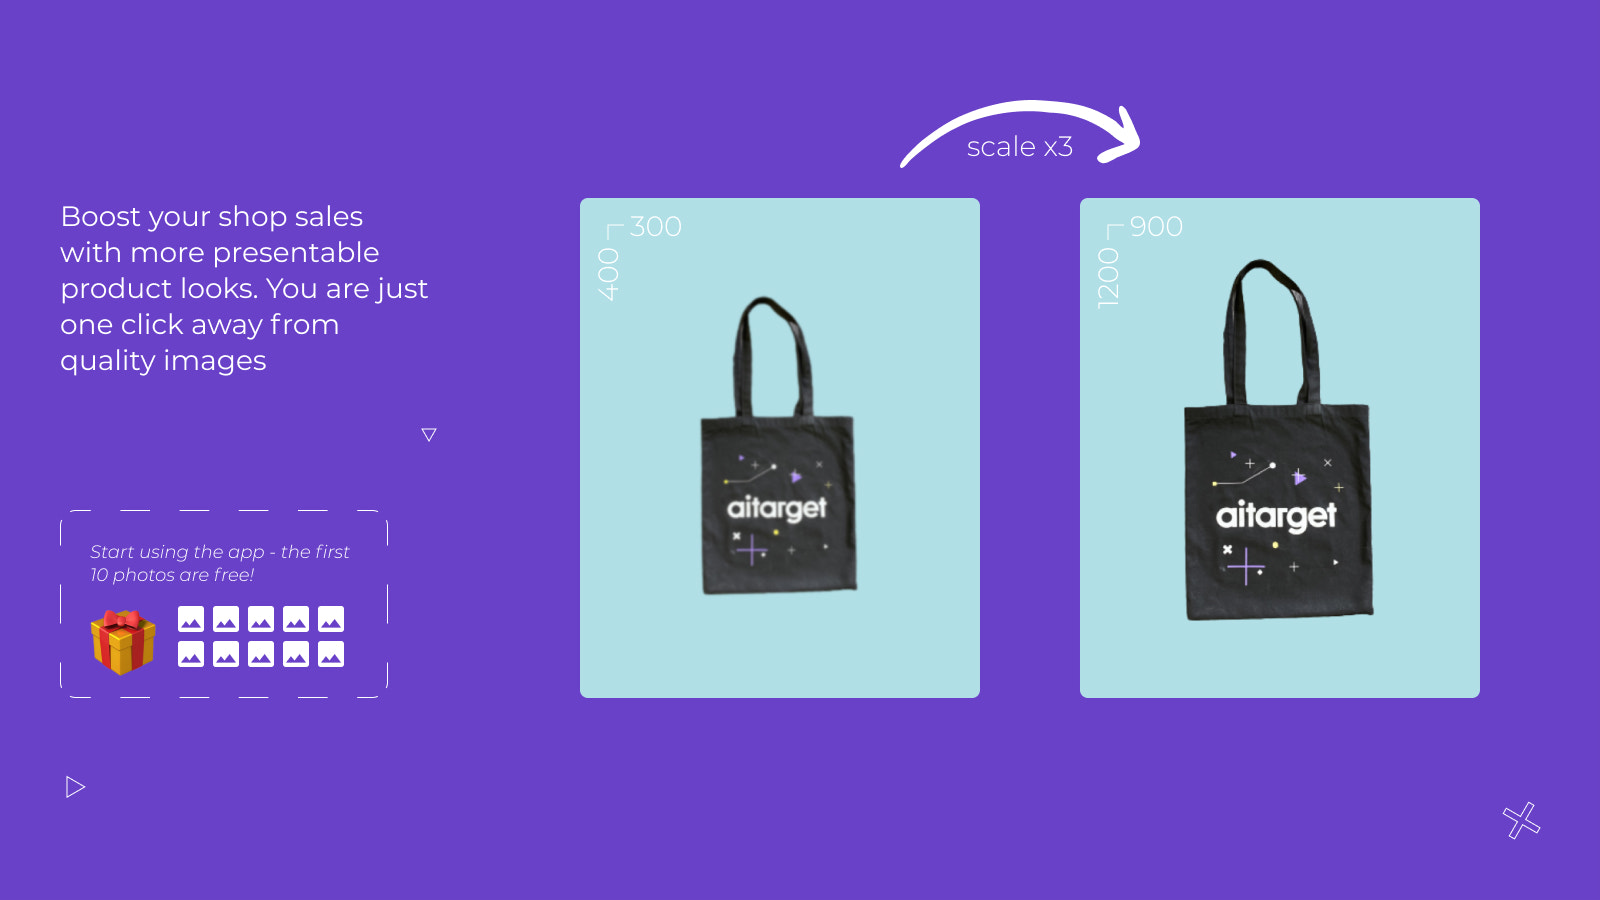 Boost your shop sales with more presentable product looks.